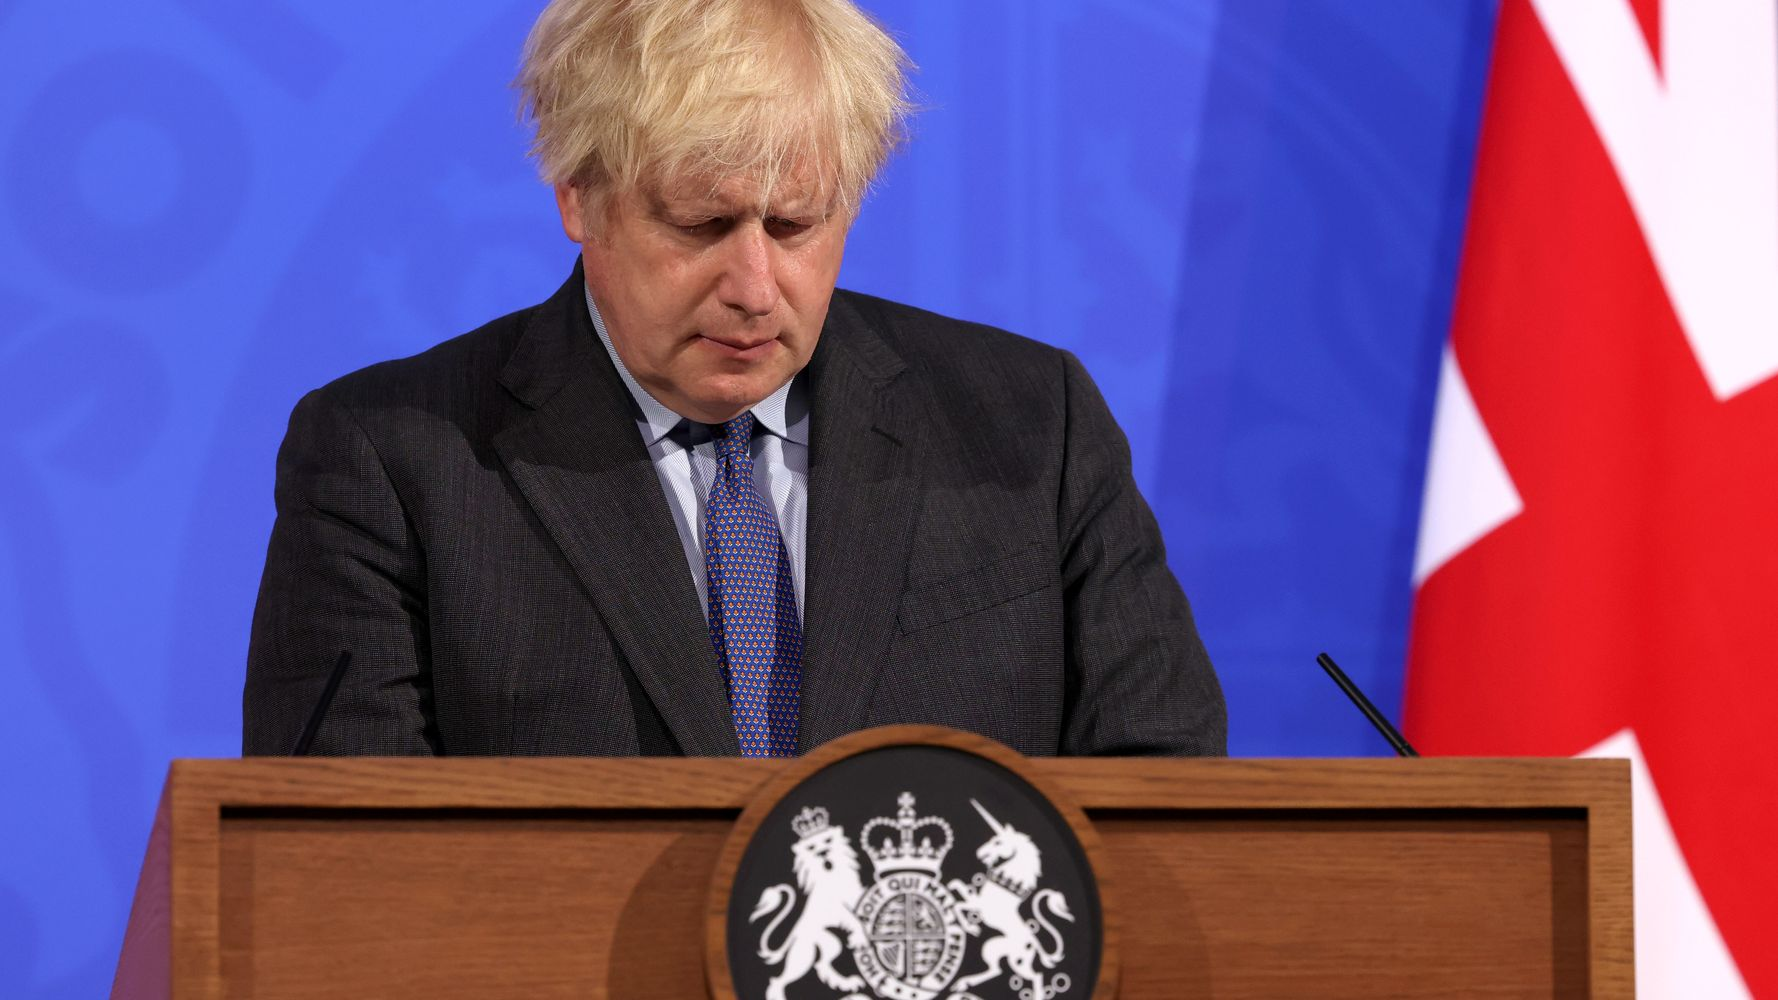 Will Boris Johnson Come To Regret Making July 19 The Terminus Of His  Roadmap? | HuffPost UK